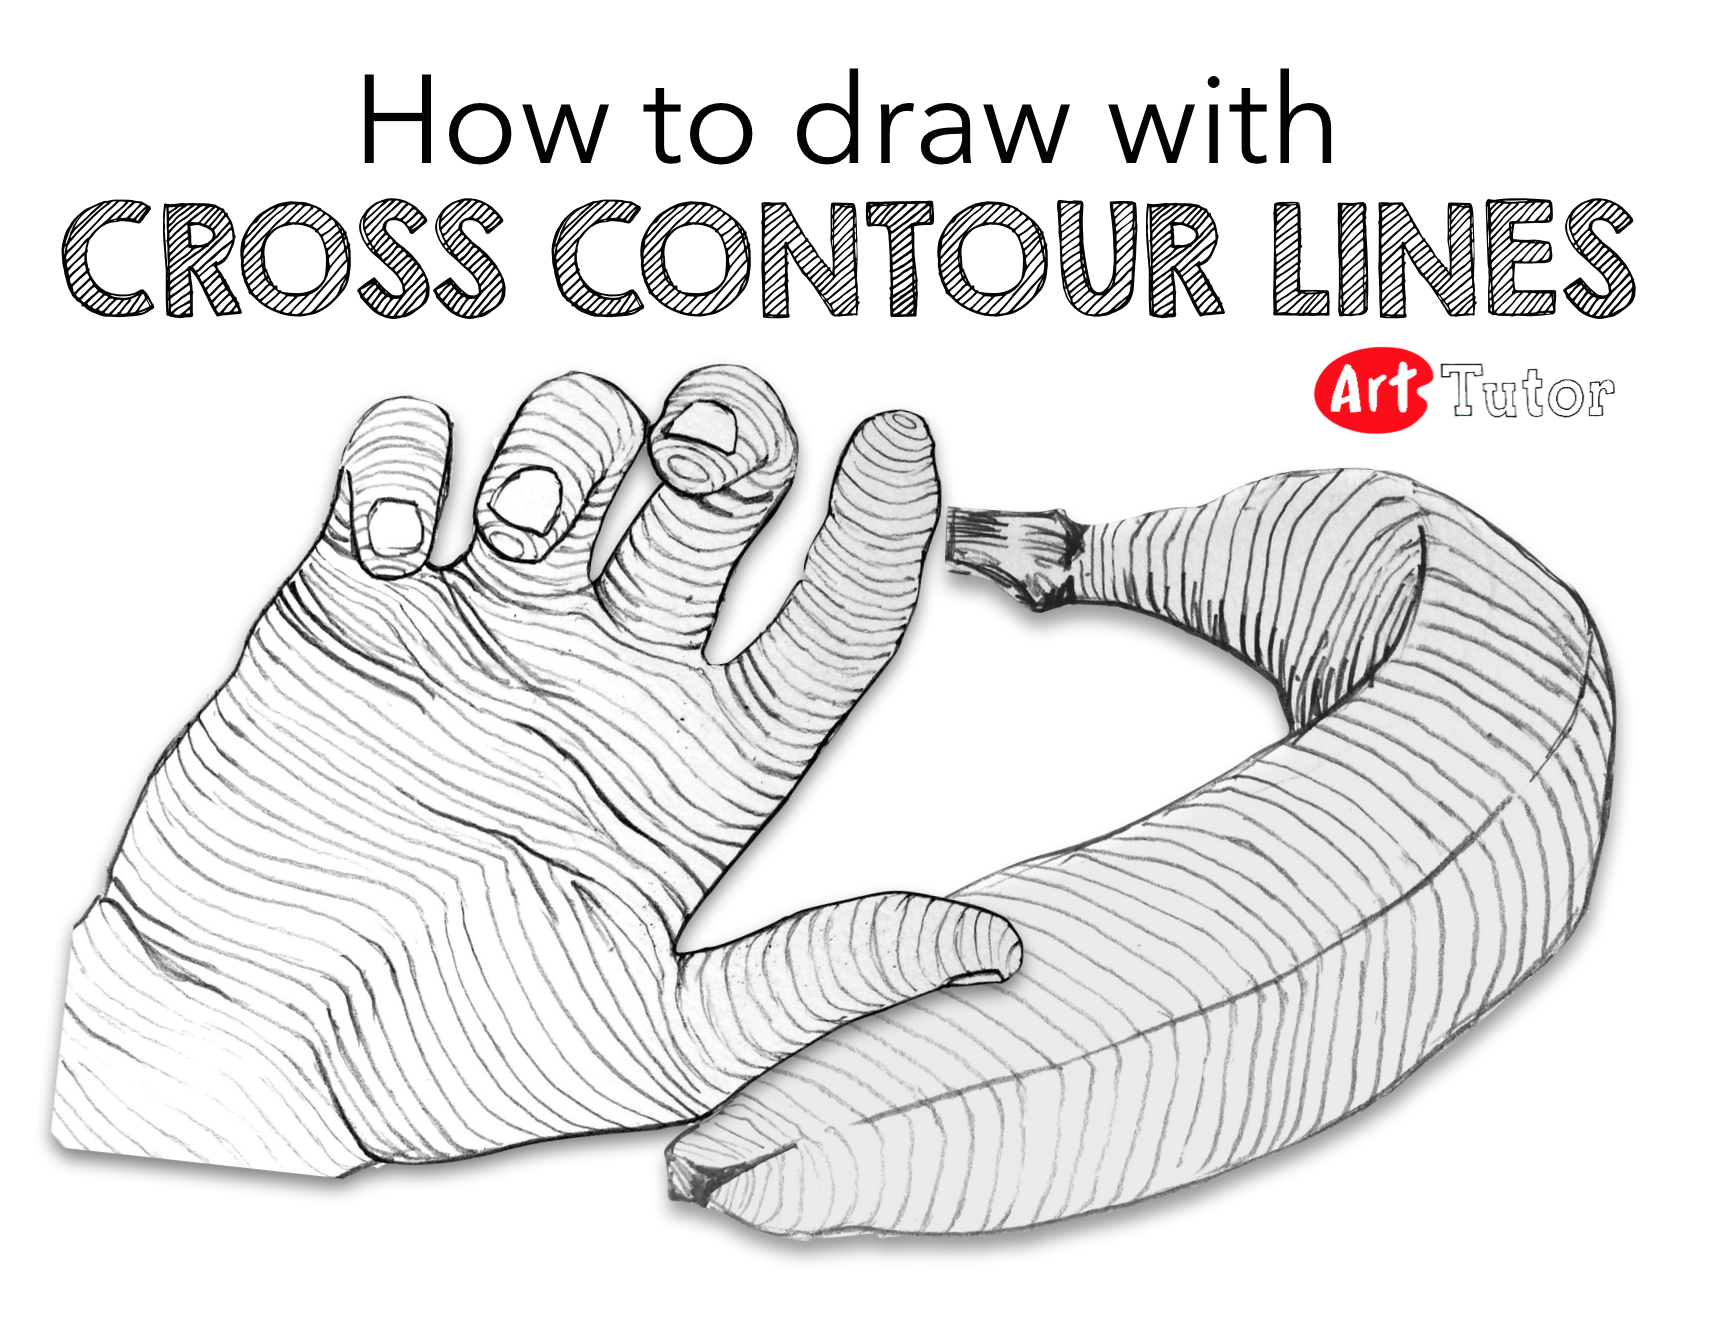 Cross Contour Drawing Exercises Are Great For Helping